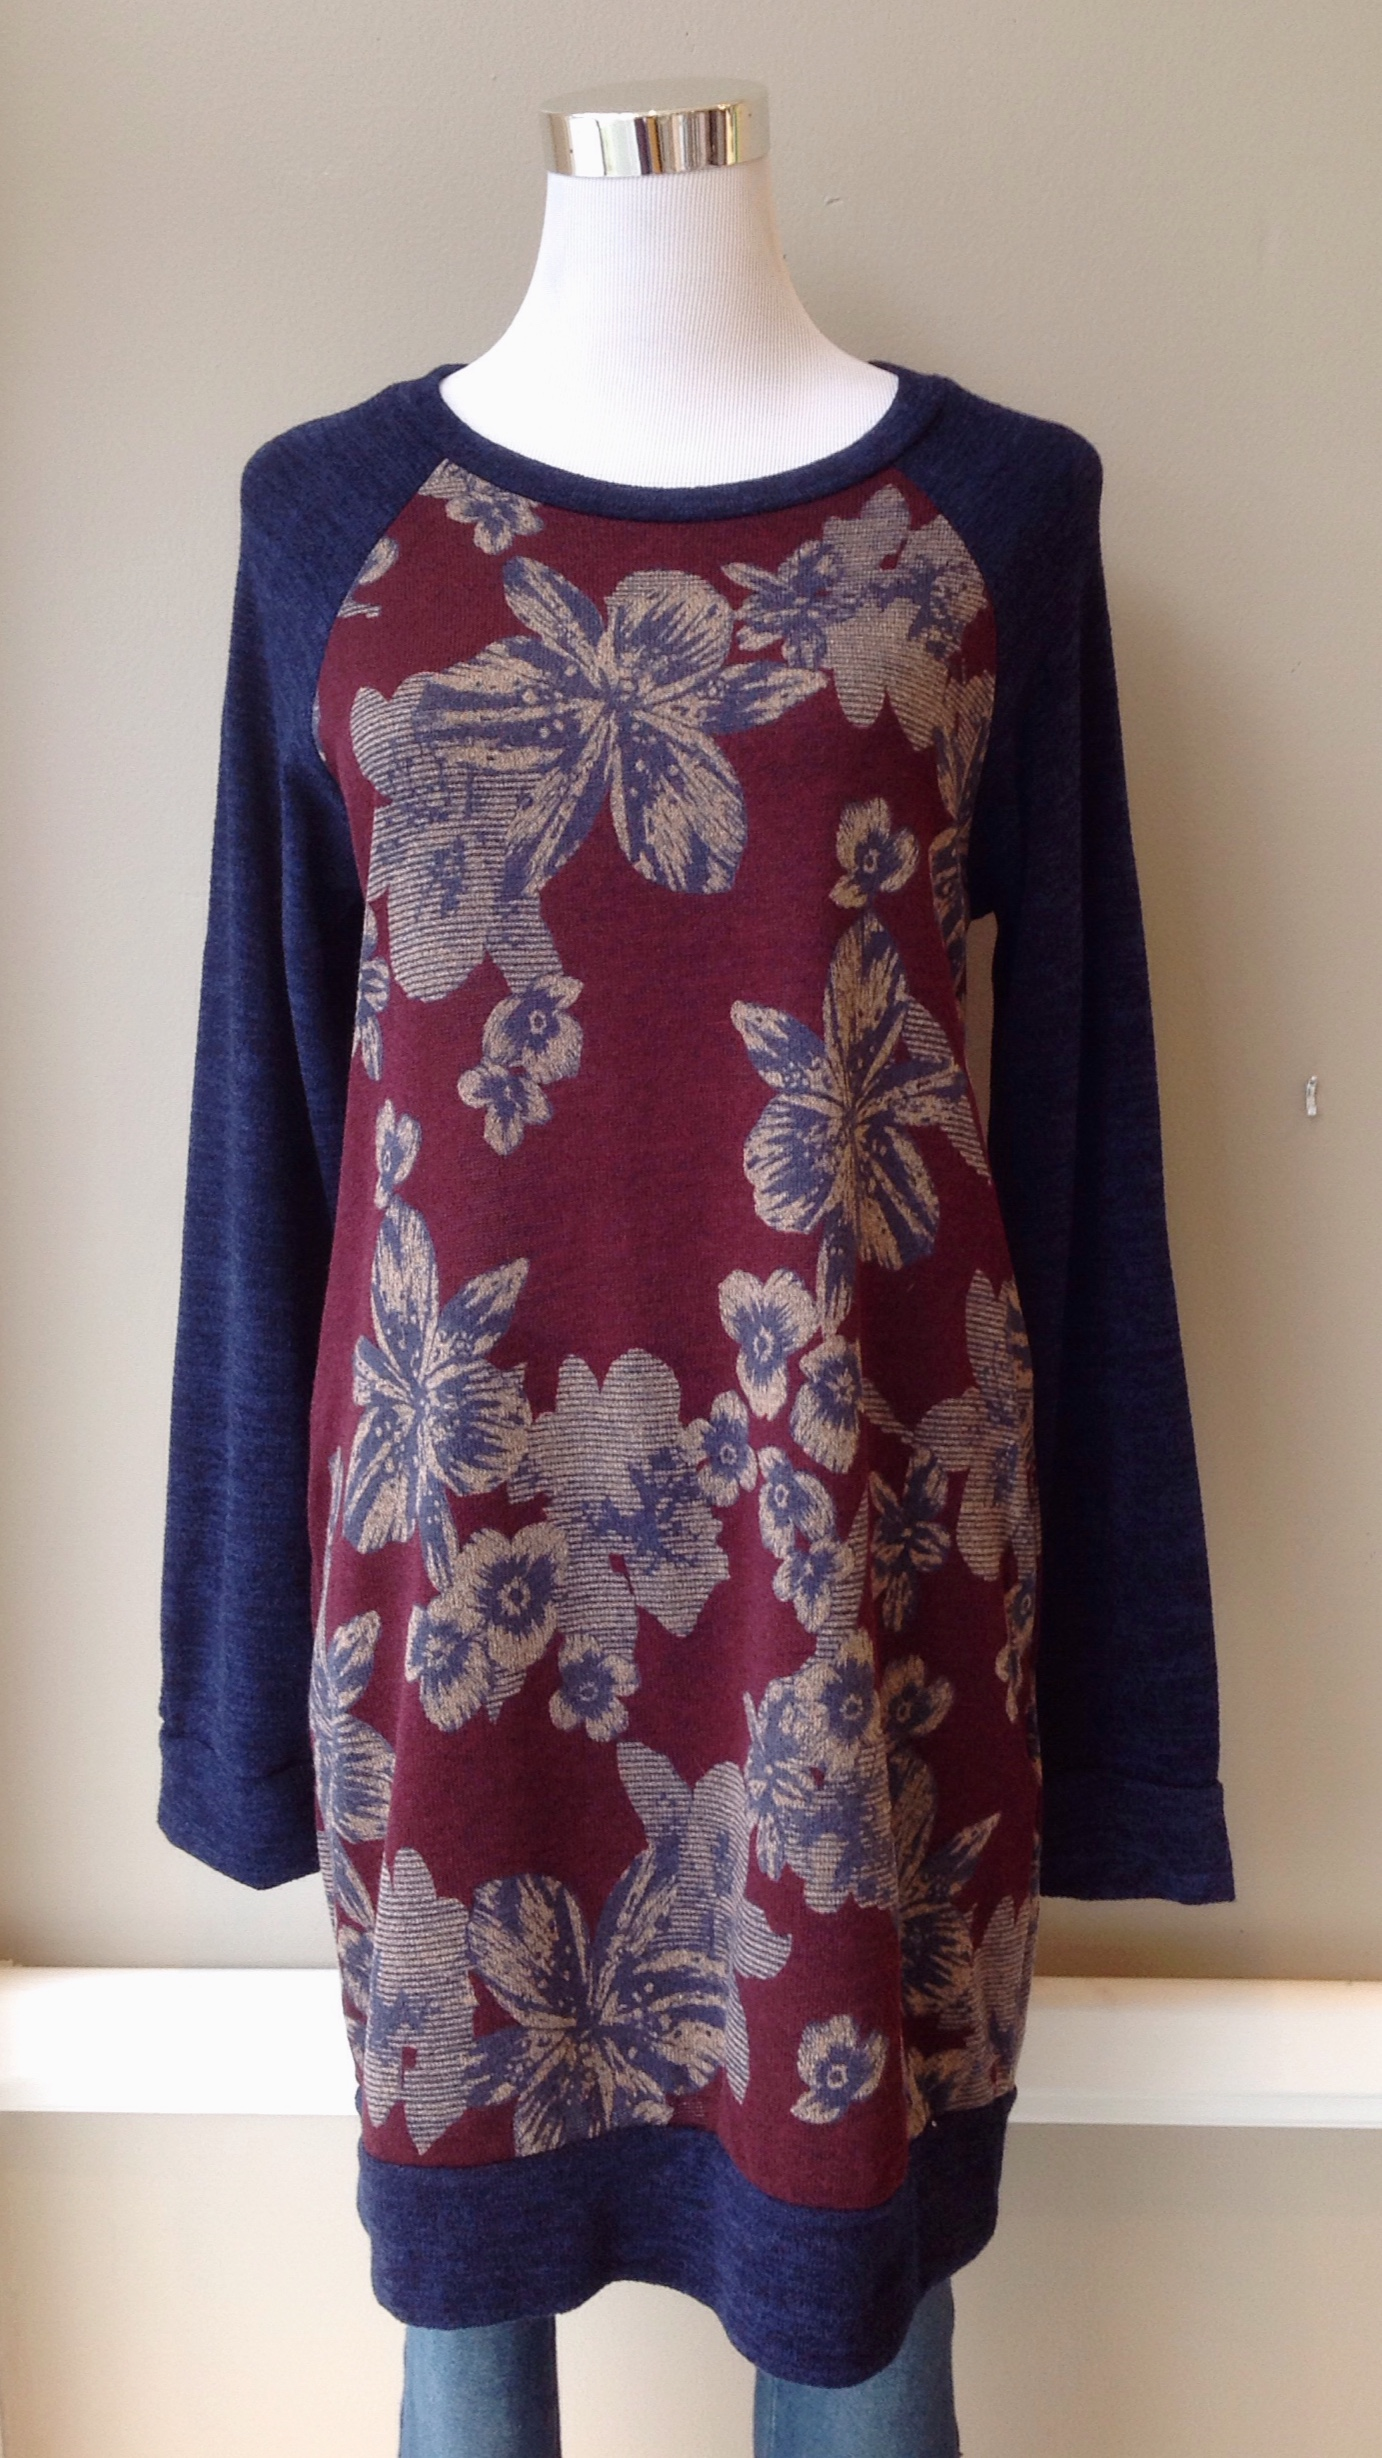 Floral print sweater dress with side pockets and elbow patches in wine/navy, $38